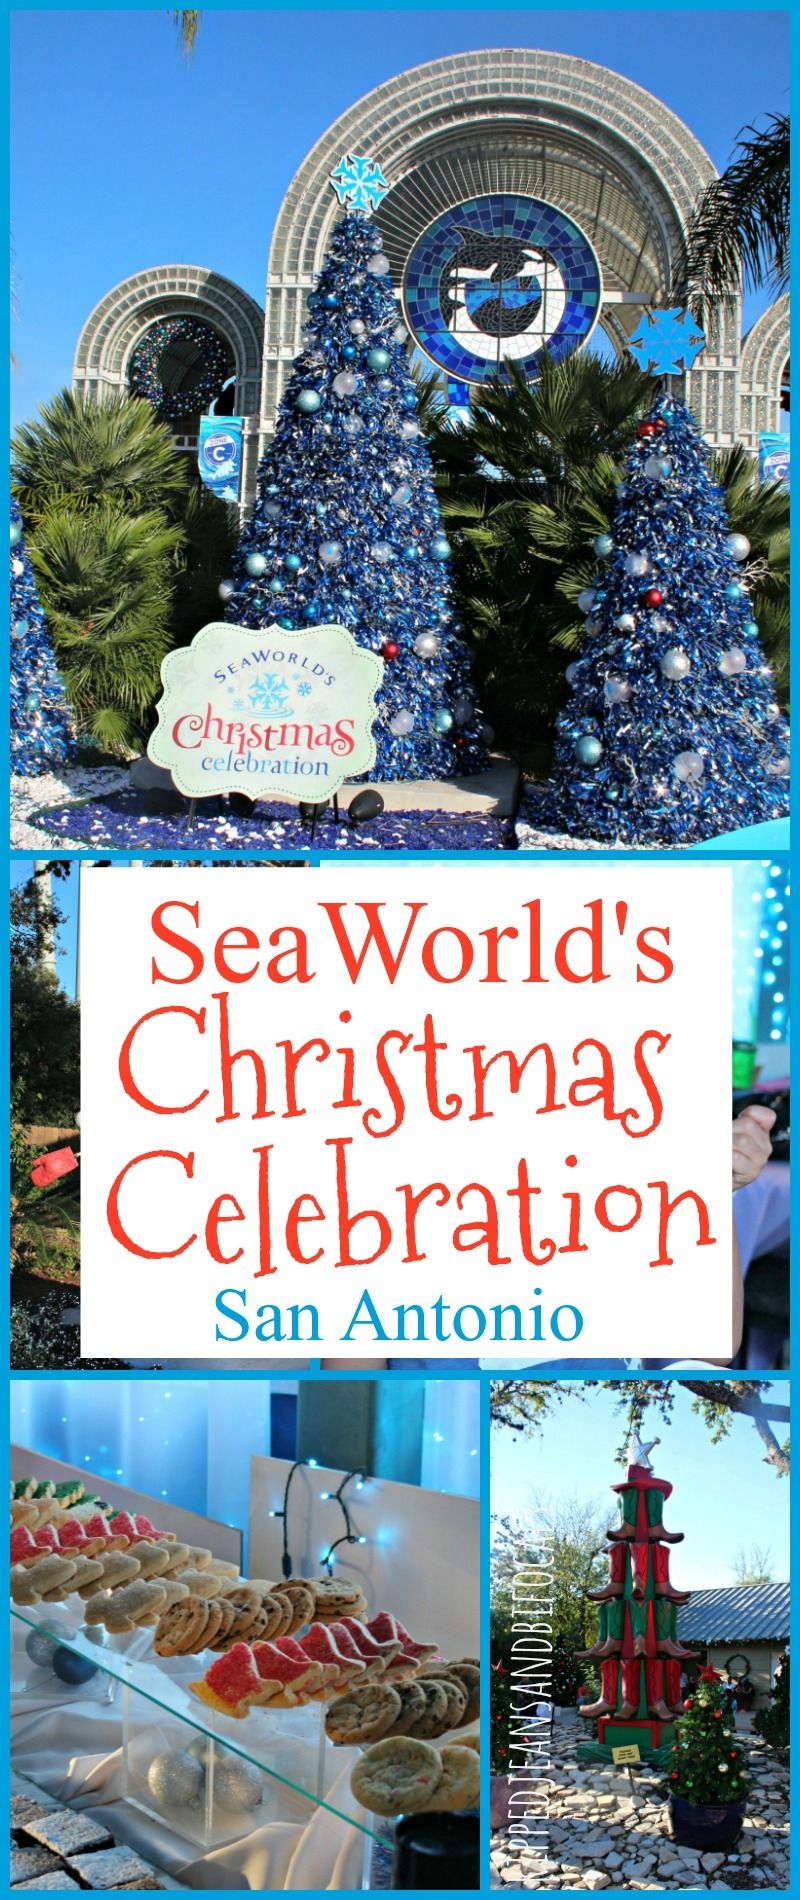 SeaWorld's Christmas Celebration Sea world, Best family